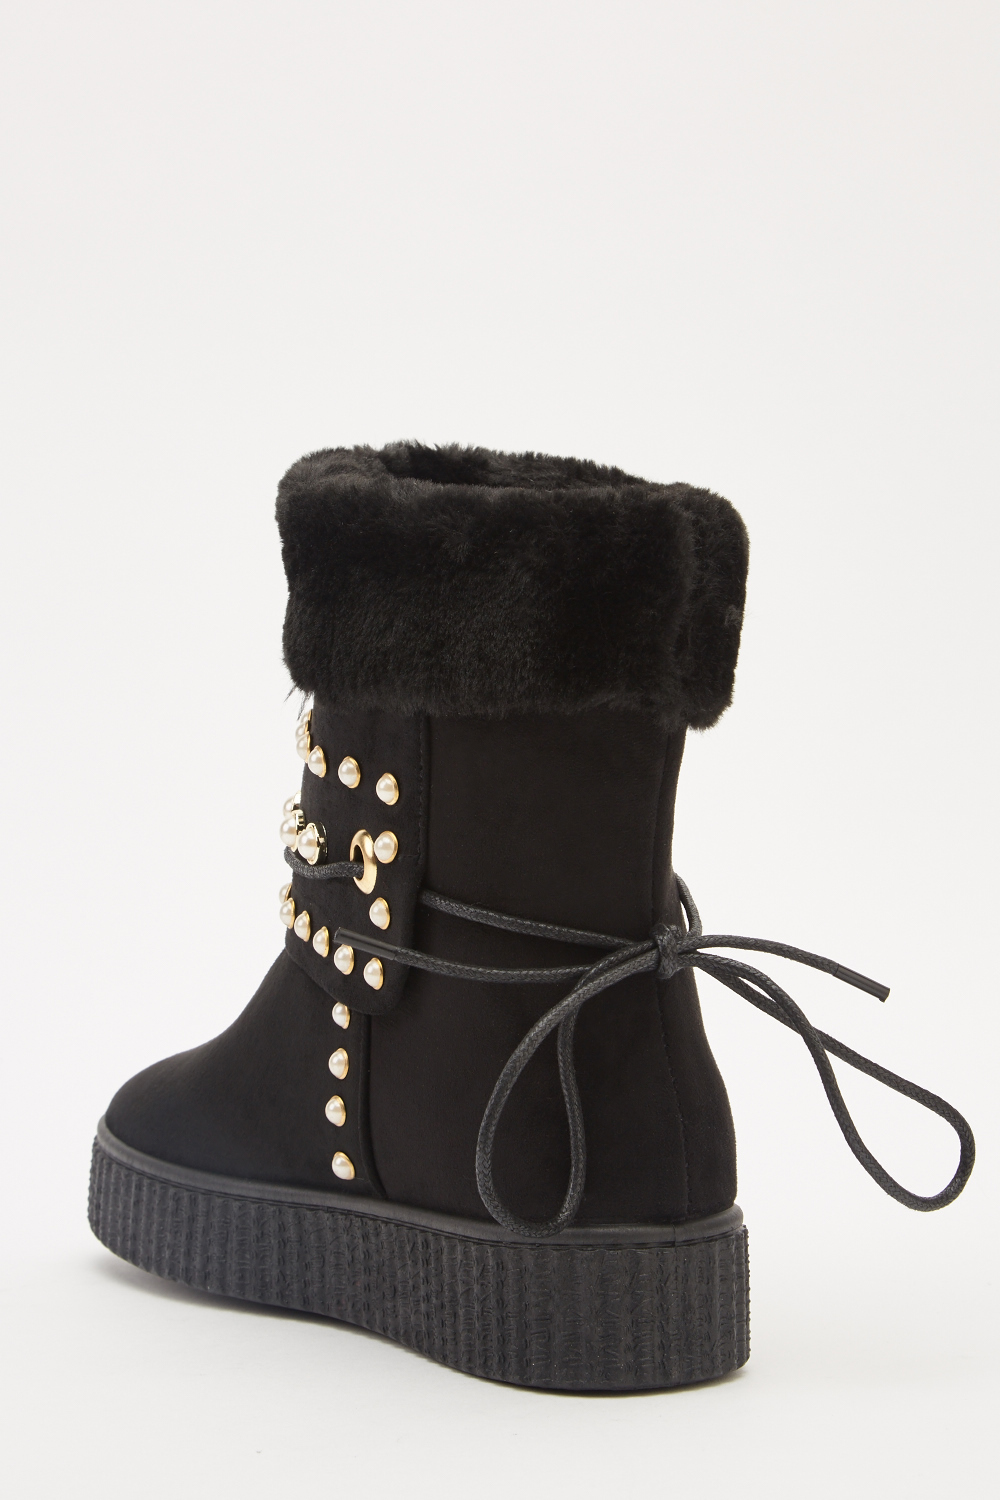 Faux Pearl Fur Trim Winter Boots - Wine Red or Pink - Just £5